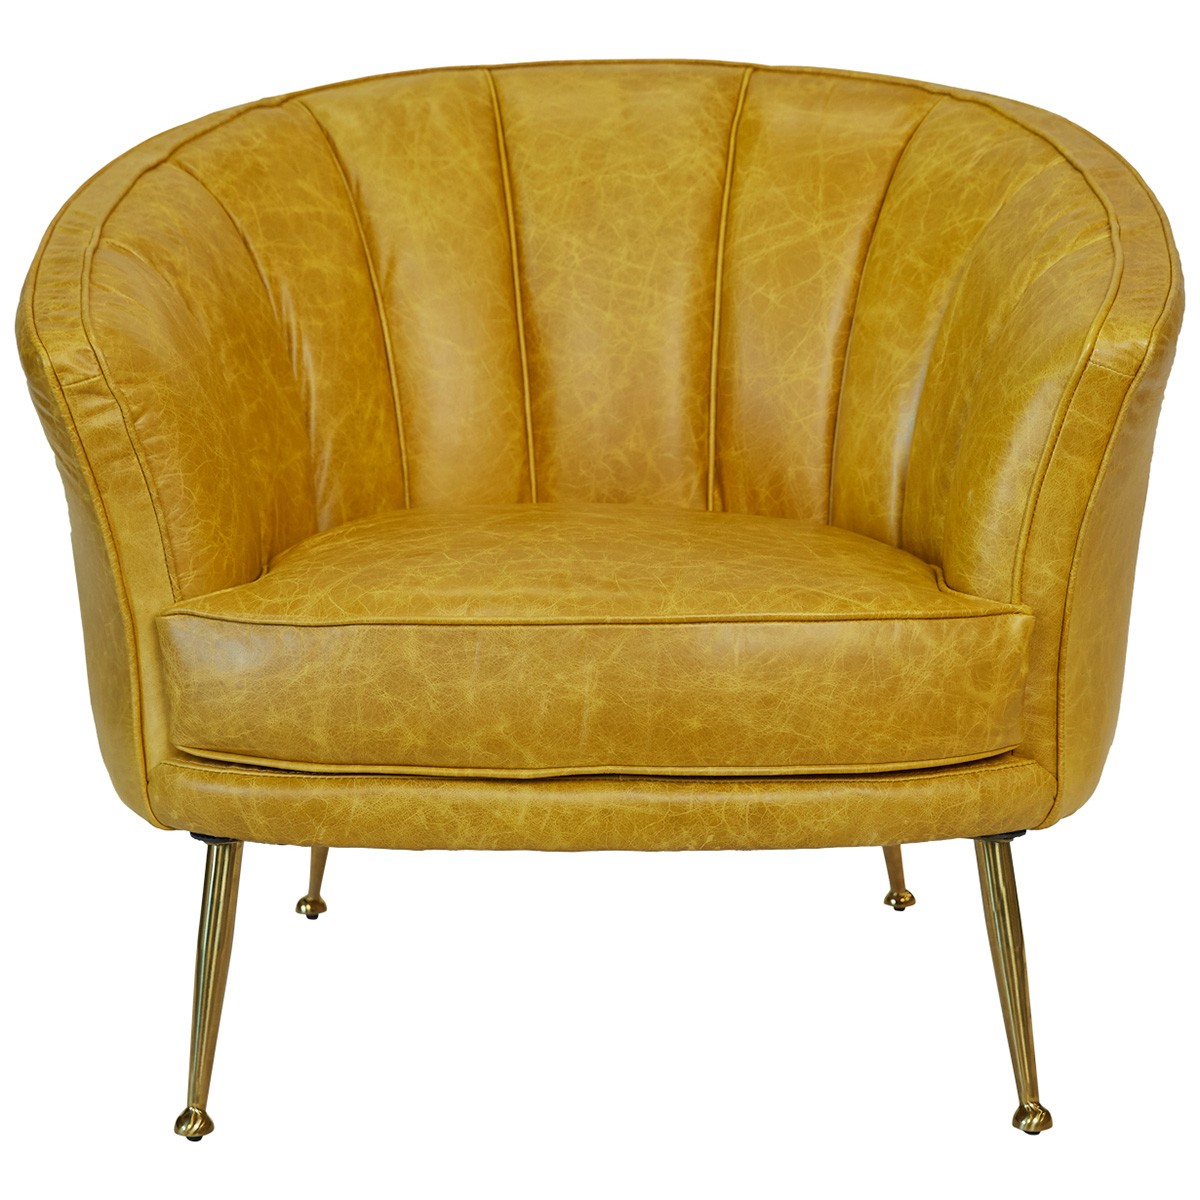 Studio Leather Armchair, Mustard